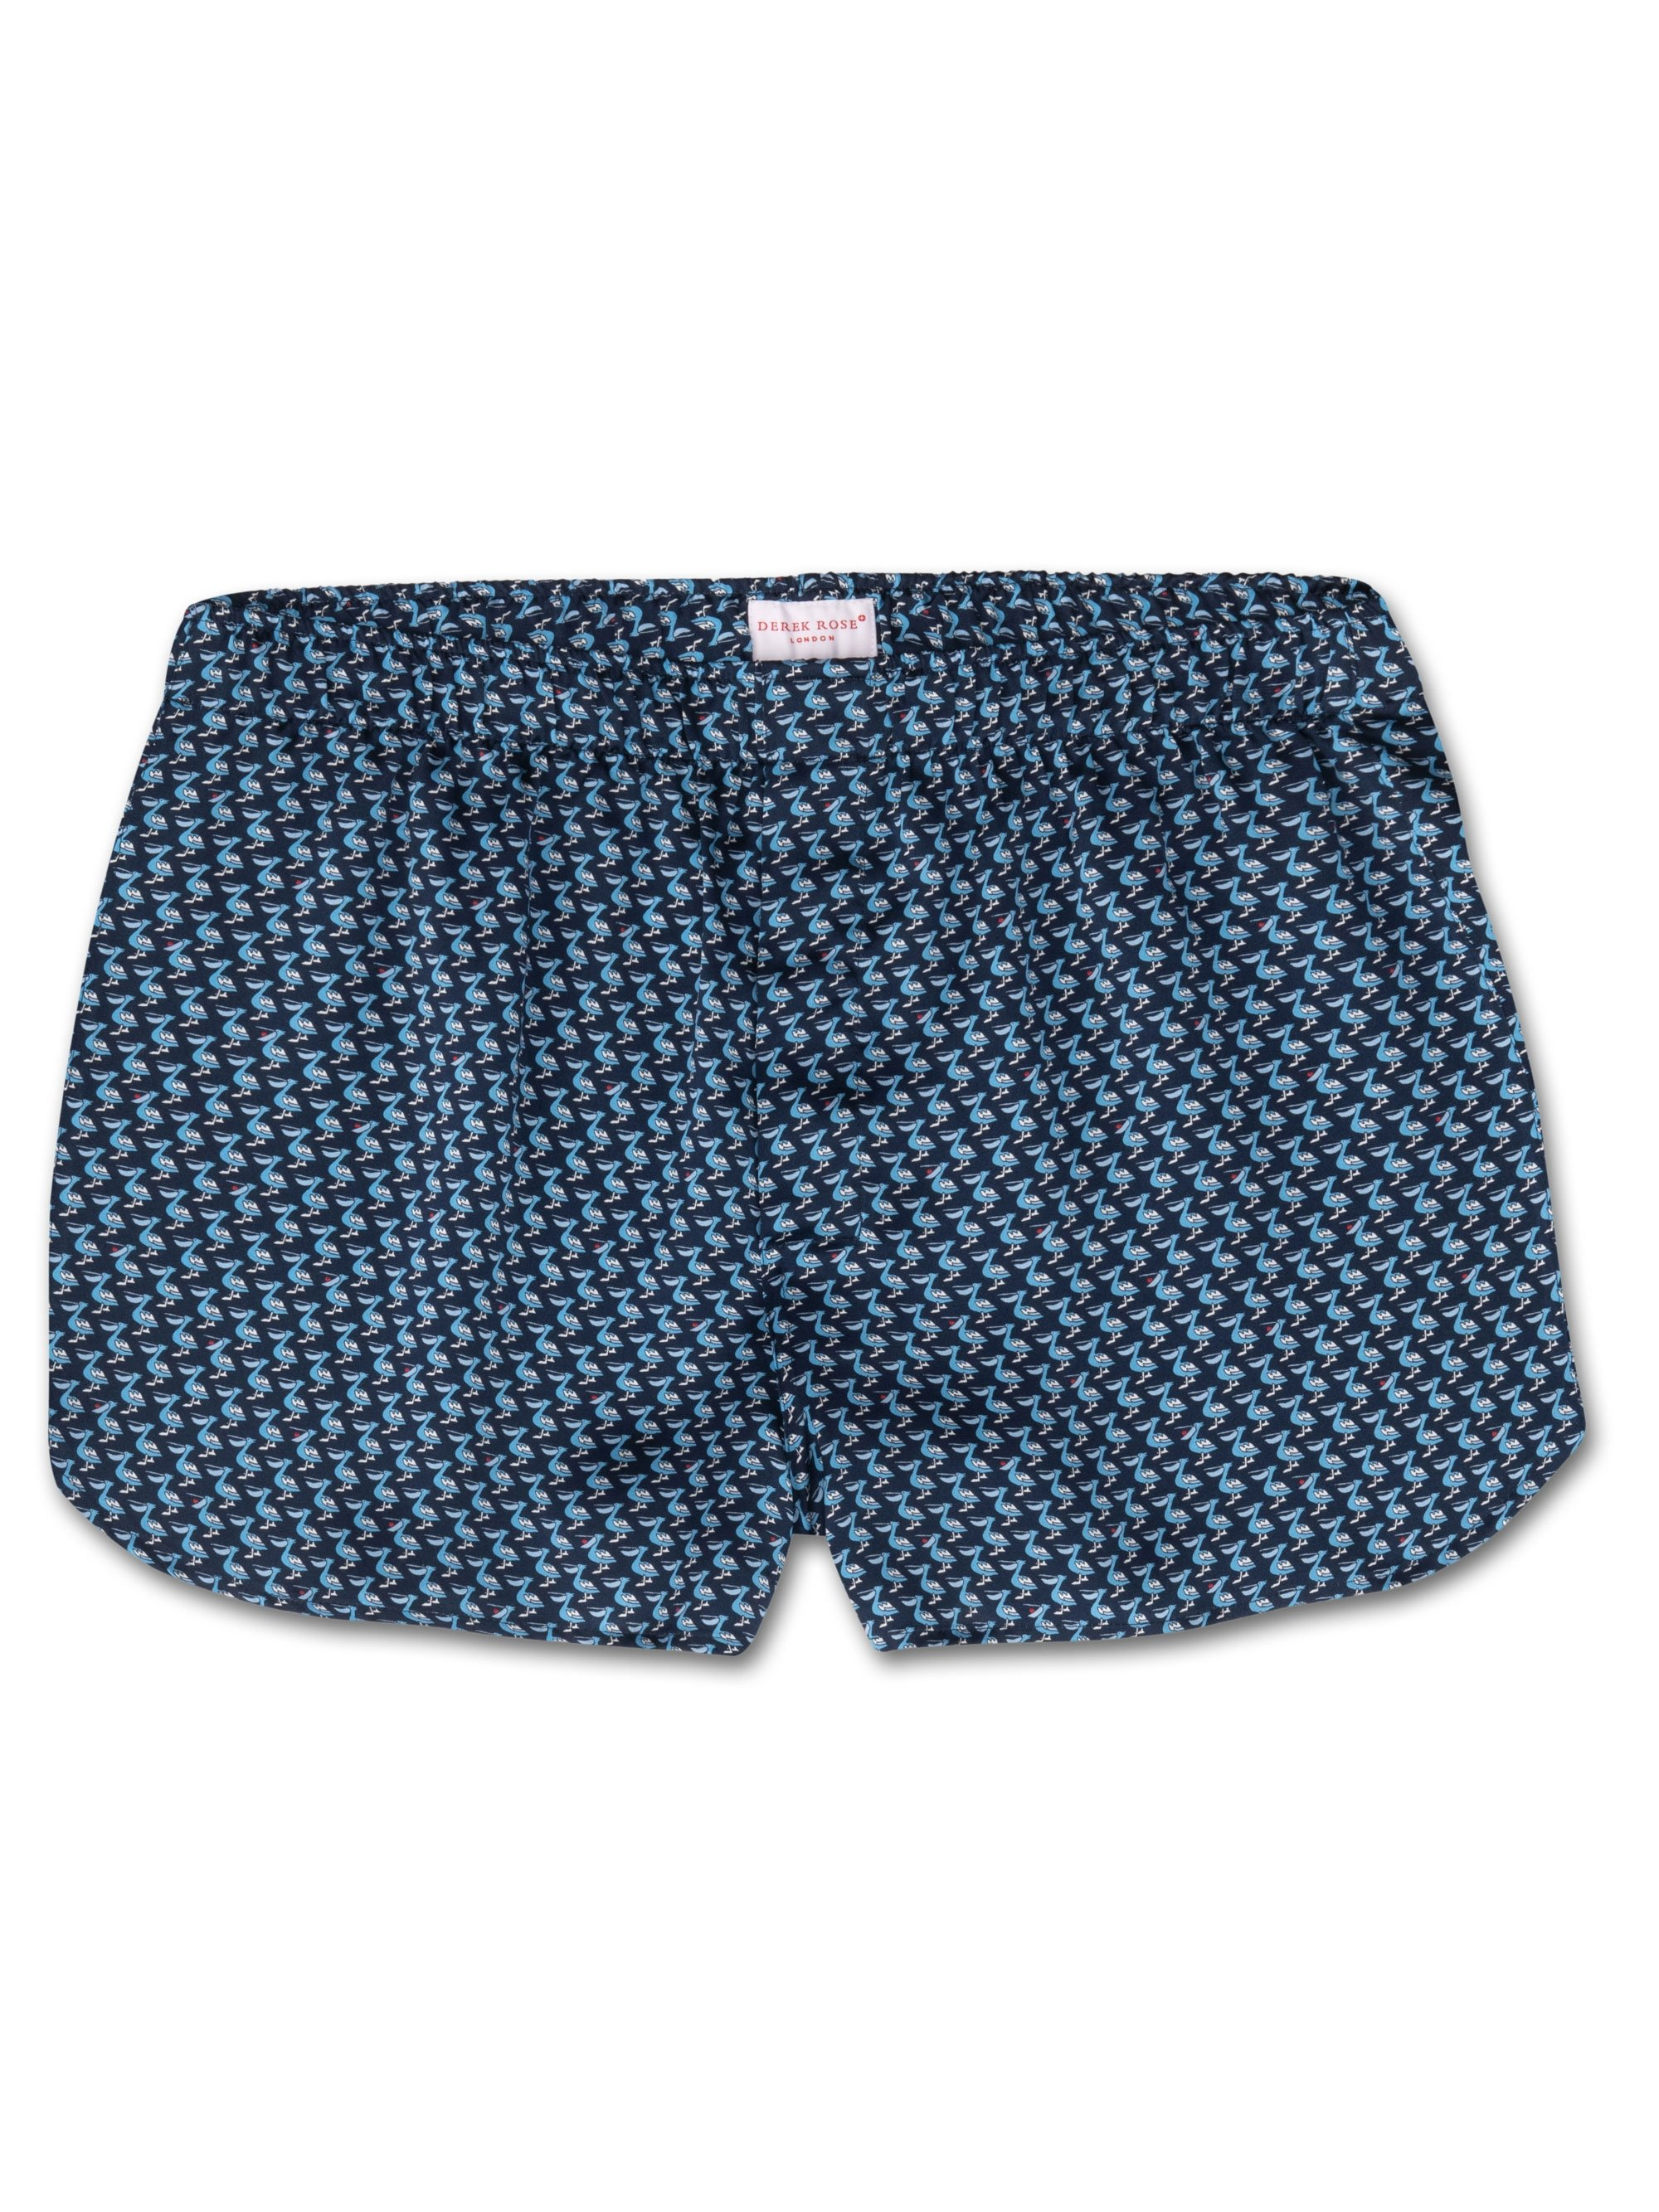 Men's Modern Fit Boxer Shorts Brindisi 32 Pure Silk Satin Navy